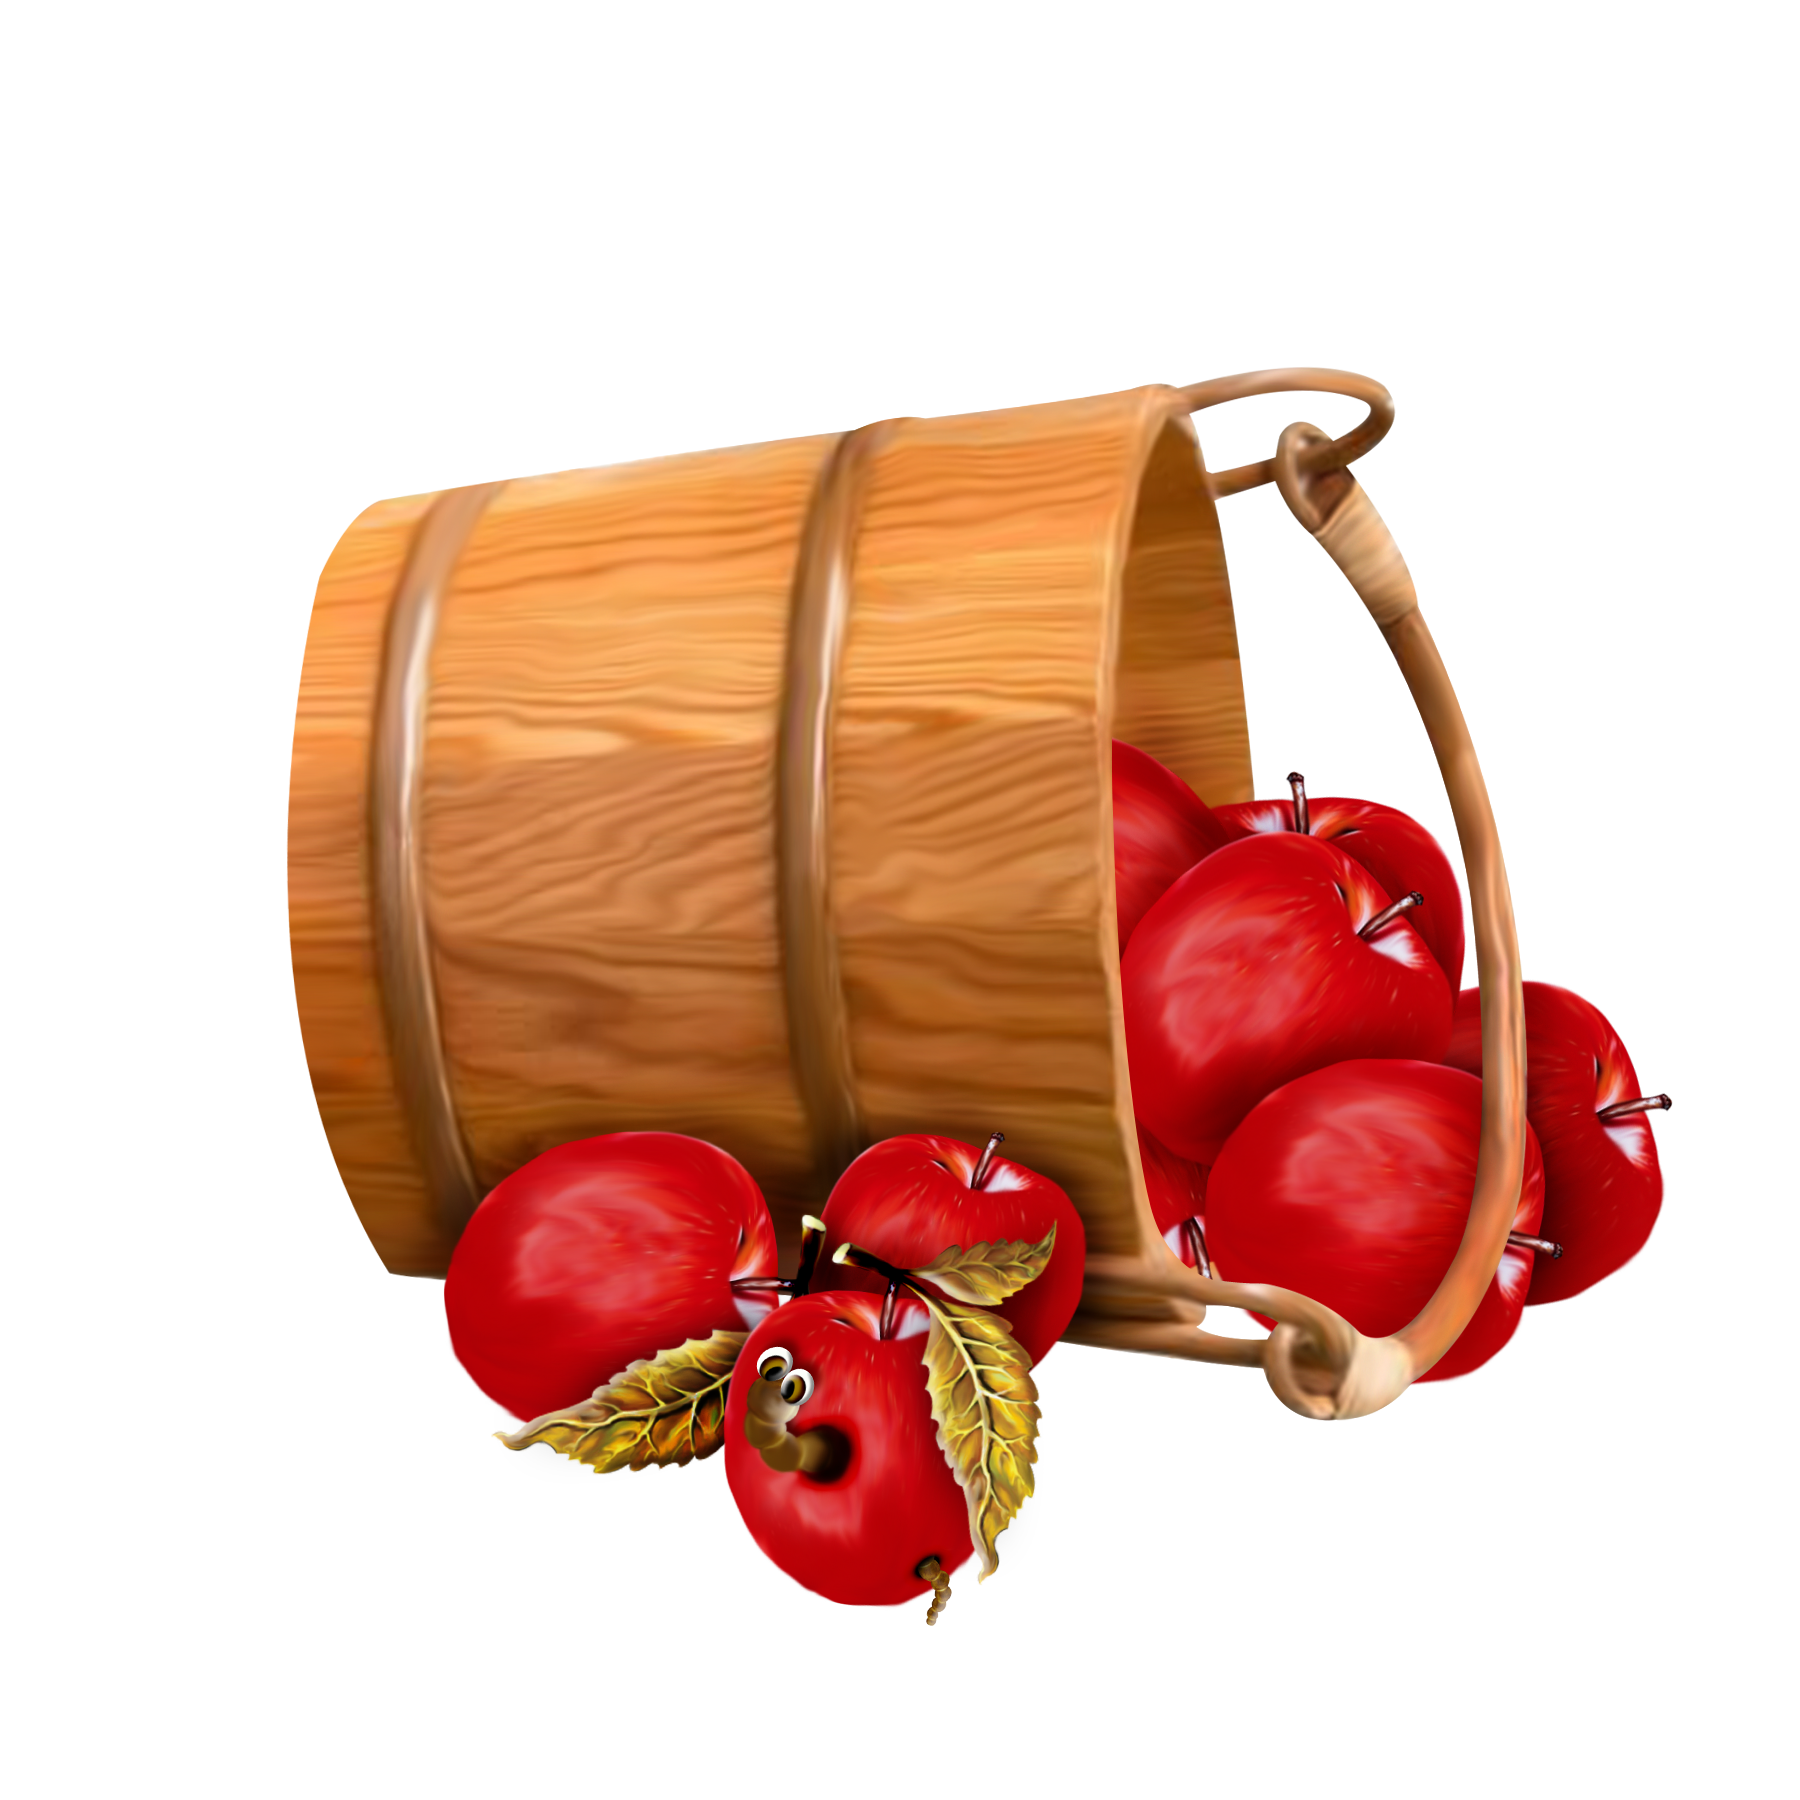 Apple barrel transparent clipart banner Bucket with Apples Transparent Clipart | Gallery Yopriceville ... banner